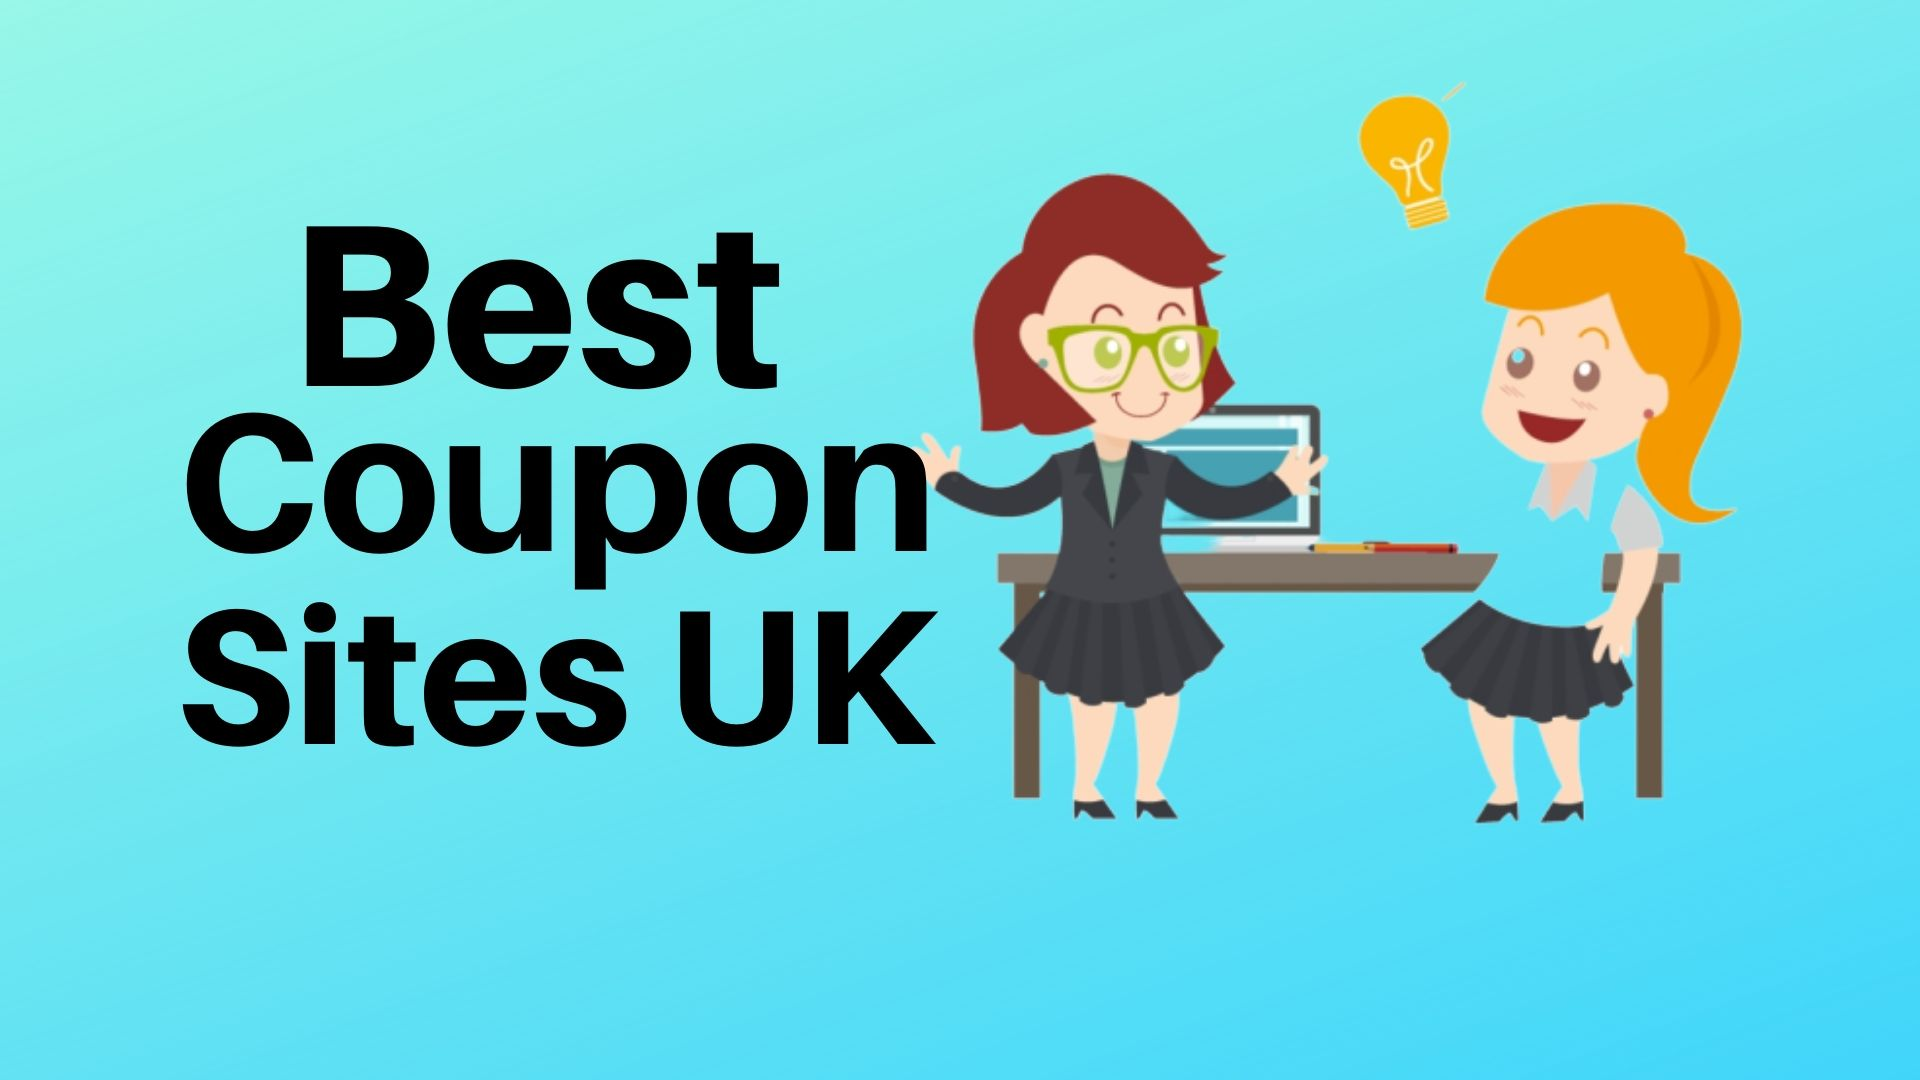 Best Coupon Sites In Uk To Save Money Online Updated 2021